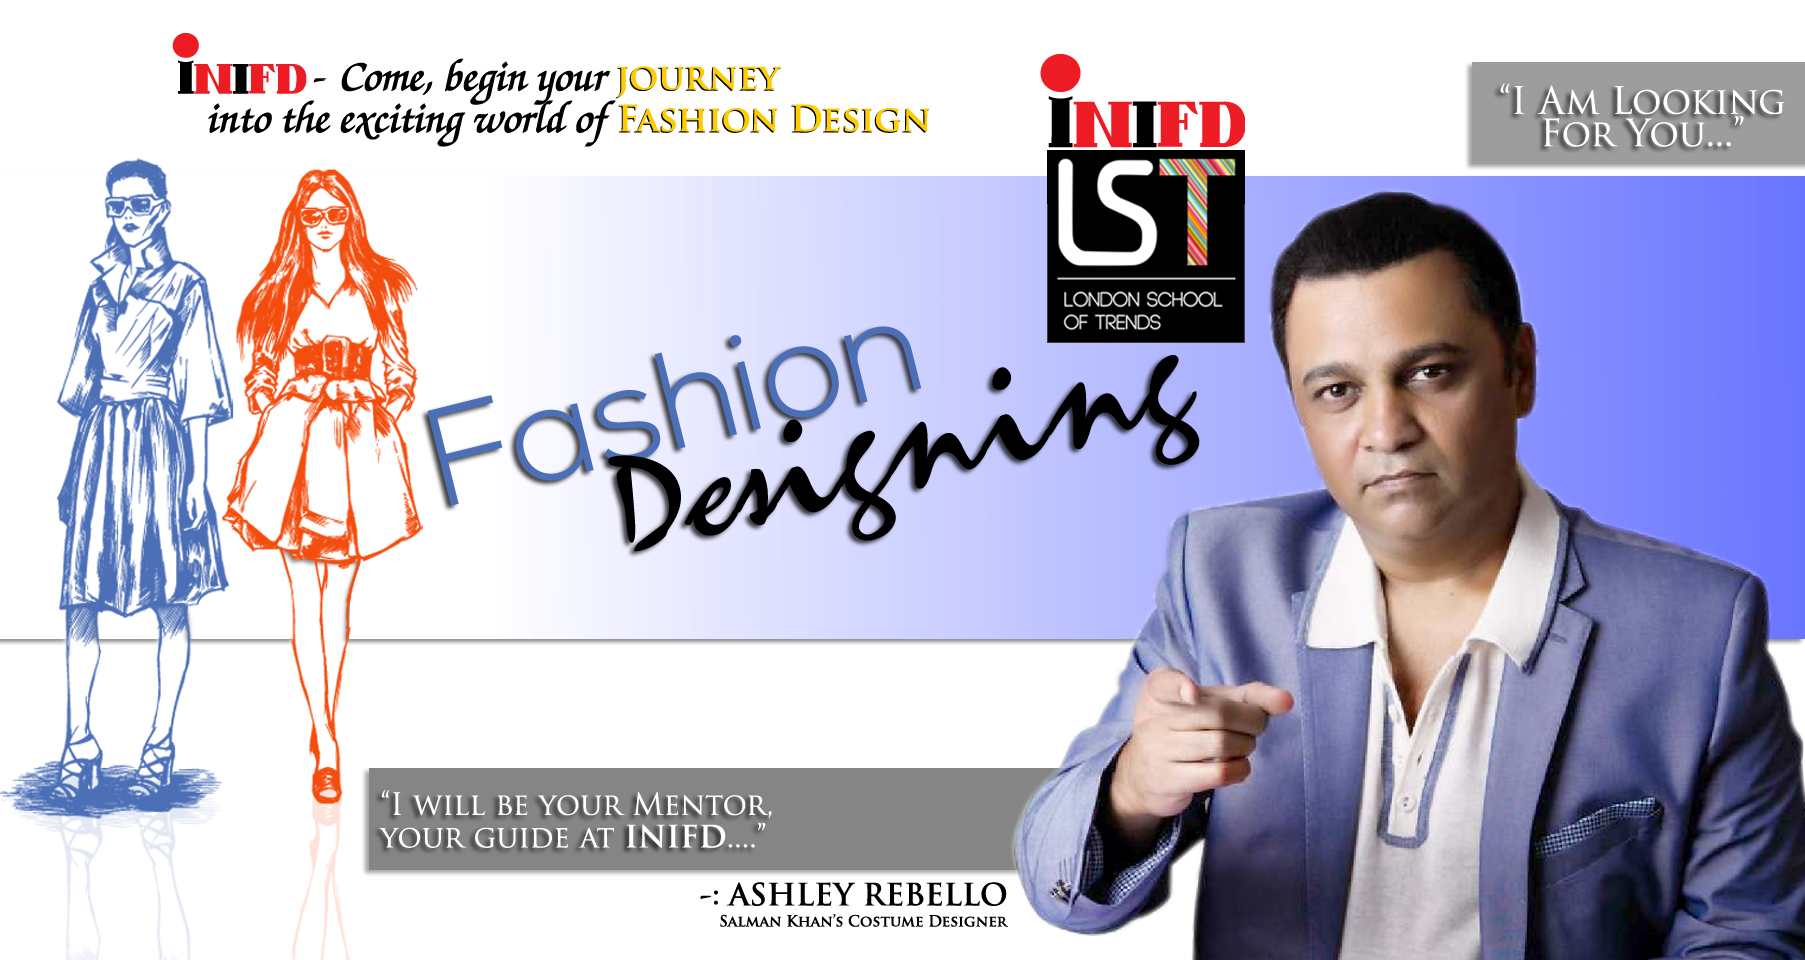 Hoskote By International Institute Of Fashion Design In City Pune Maharashtra In Phone No 919960243211